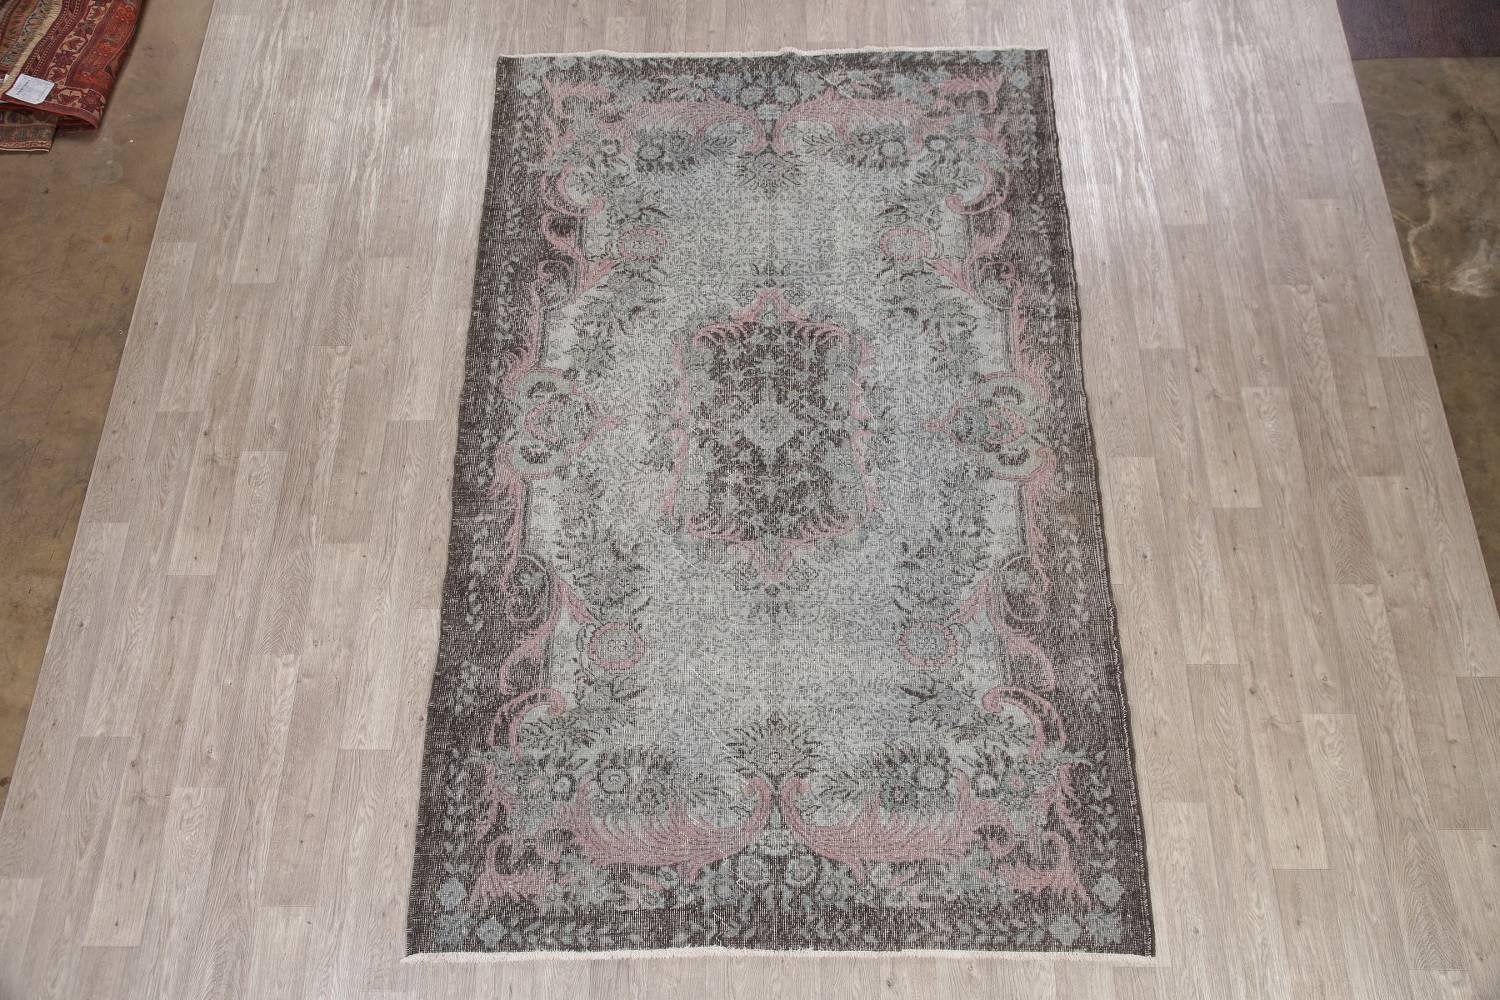 Antique Muted Distressed Aubusson Oriental Area Rug 6x10 image 2